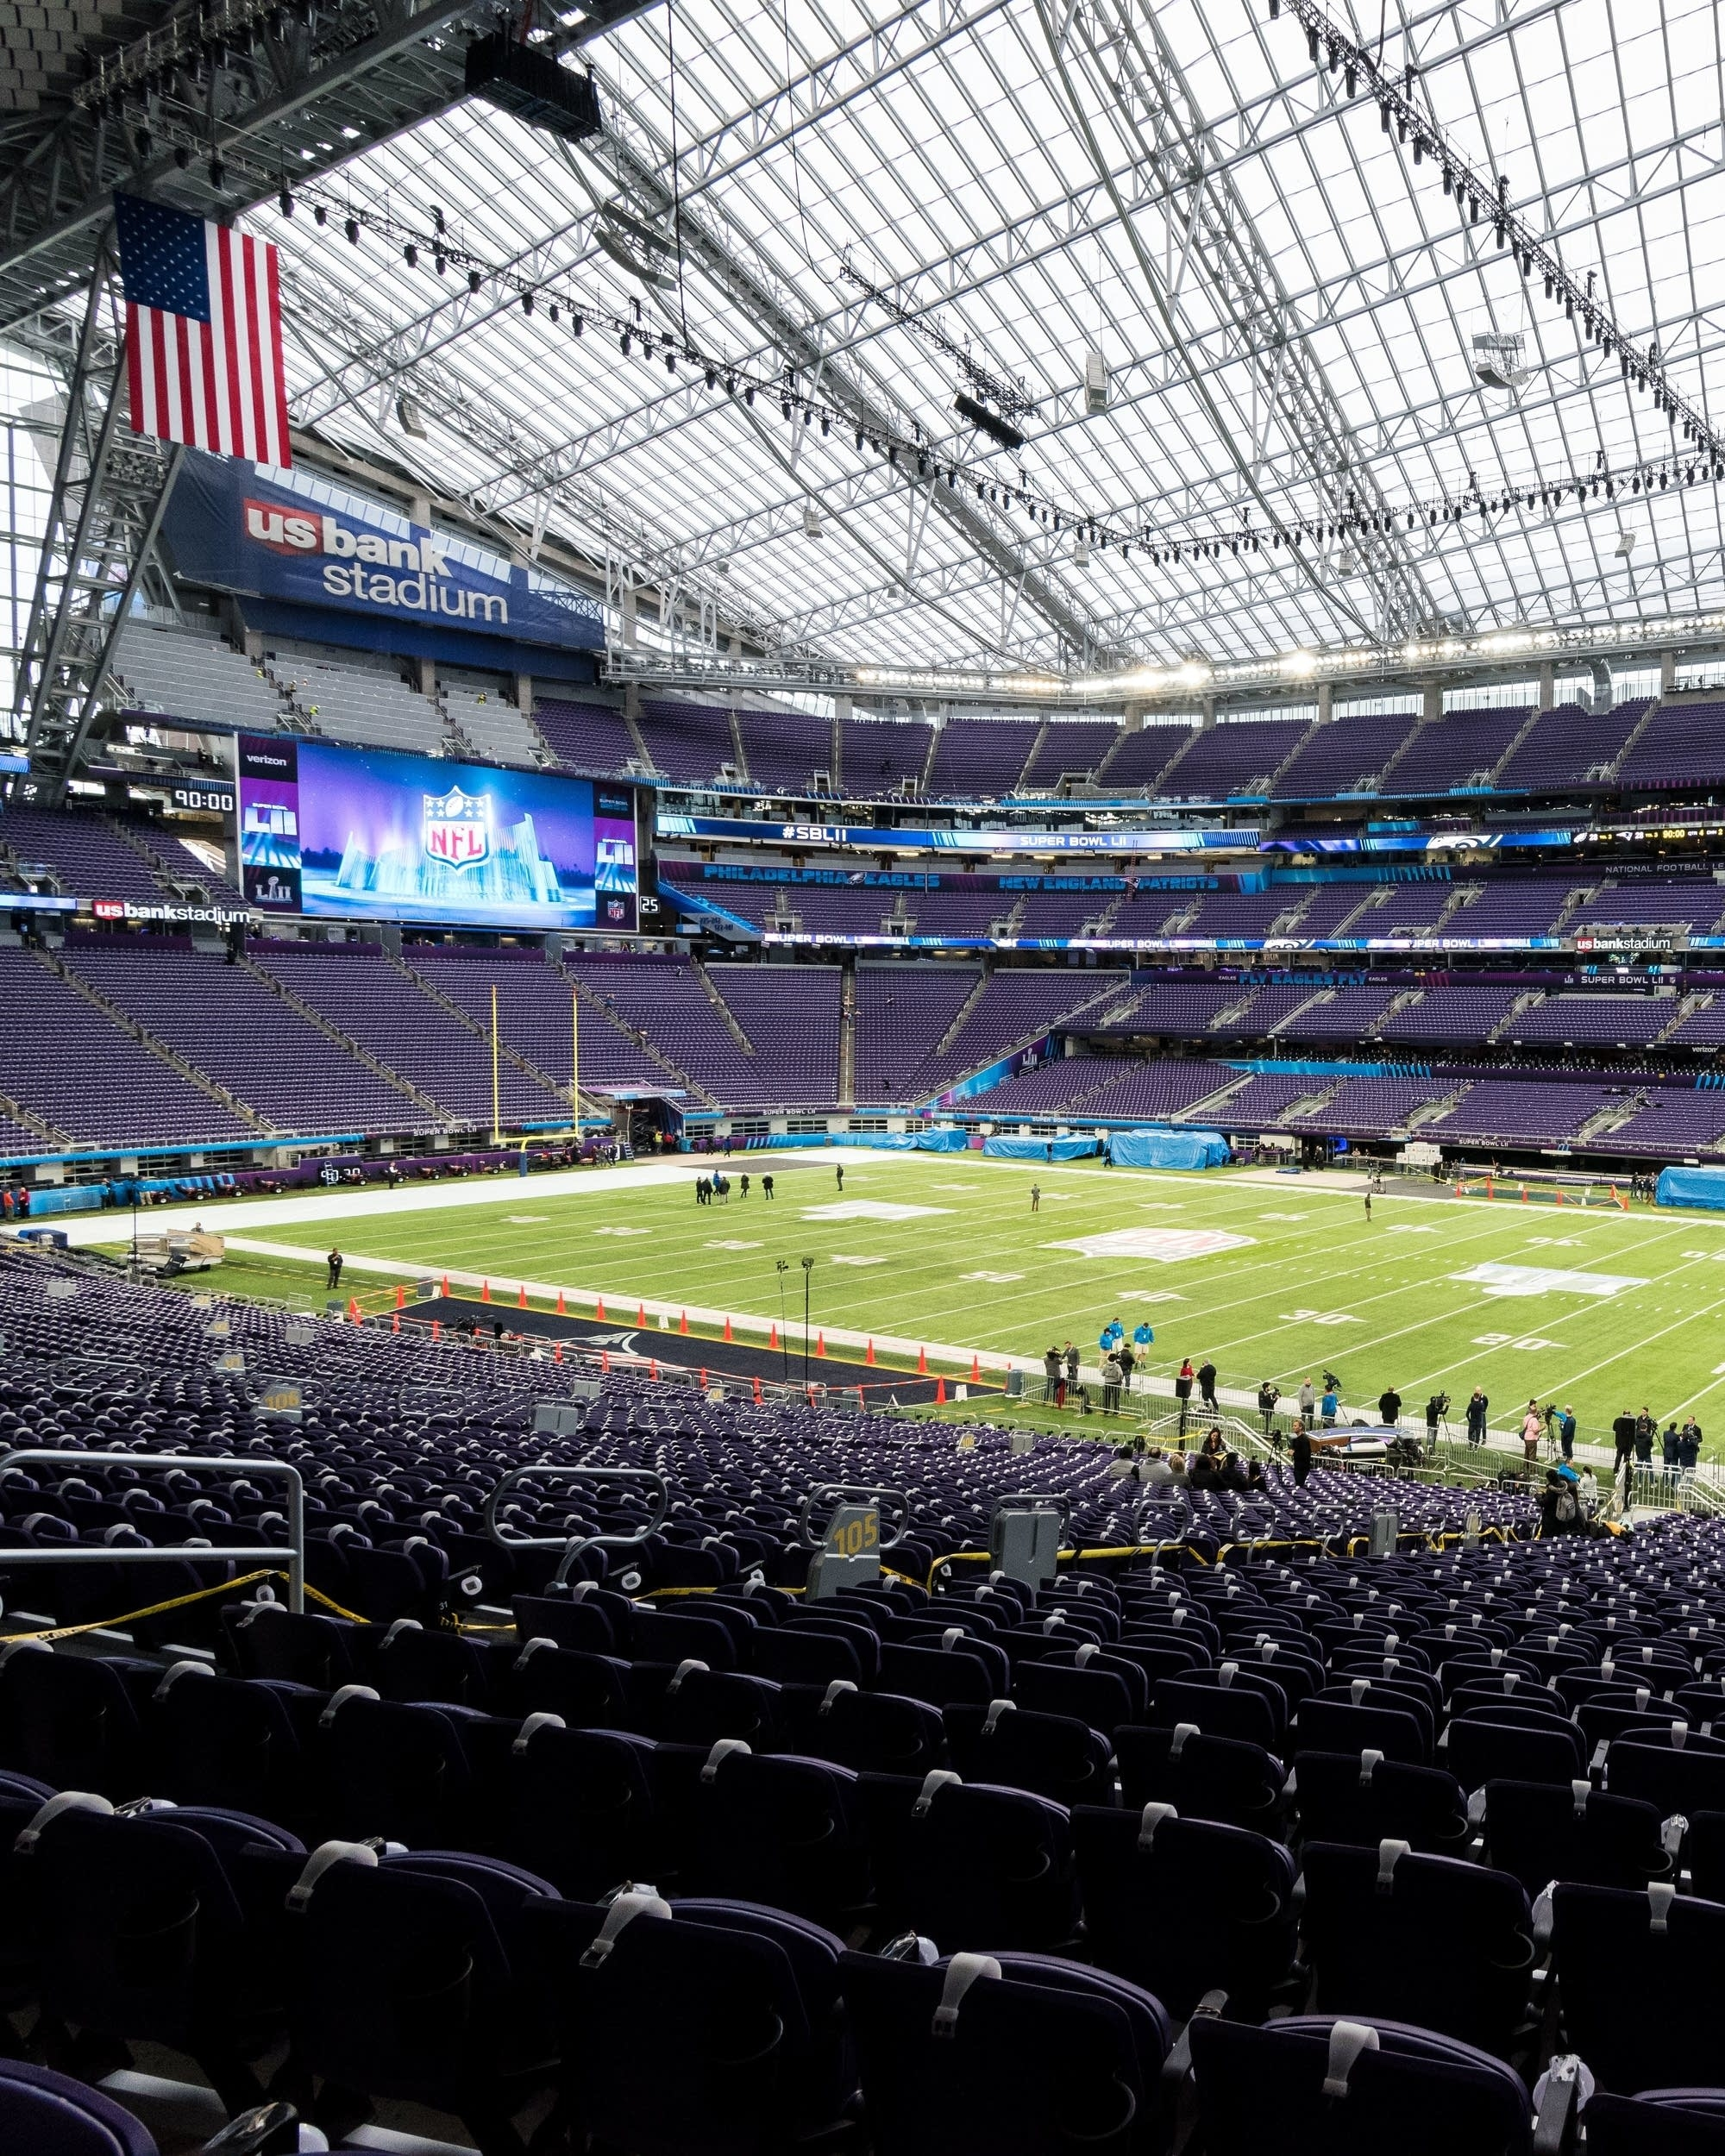 U.s. Bank Stadium Gets A Makeover Before The Super Bowl inside Super Bowl Seating Capacity Requirements